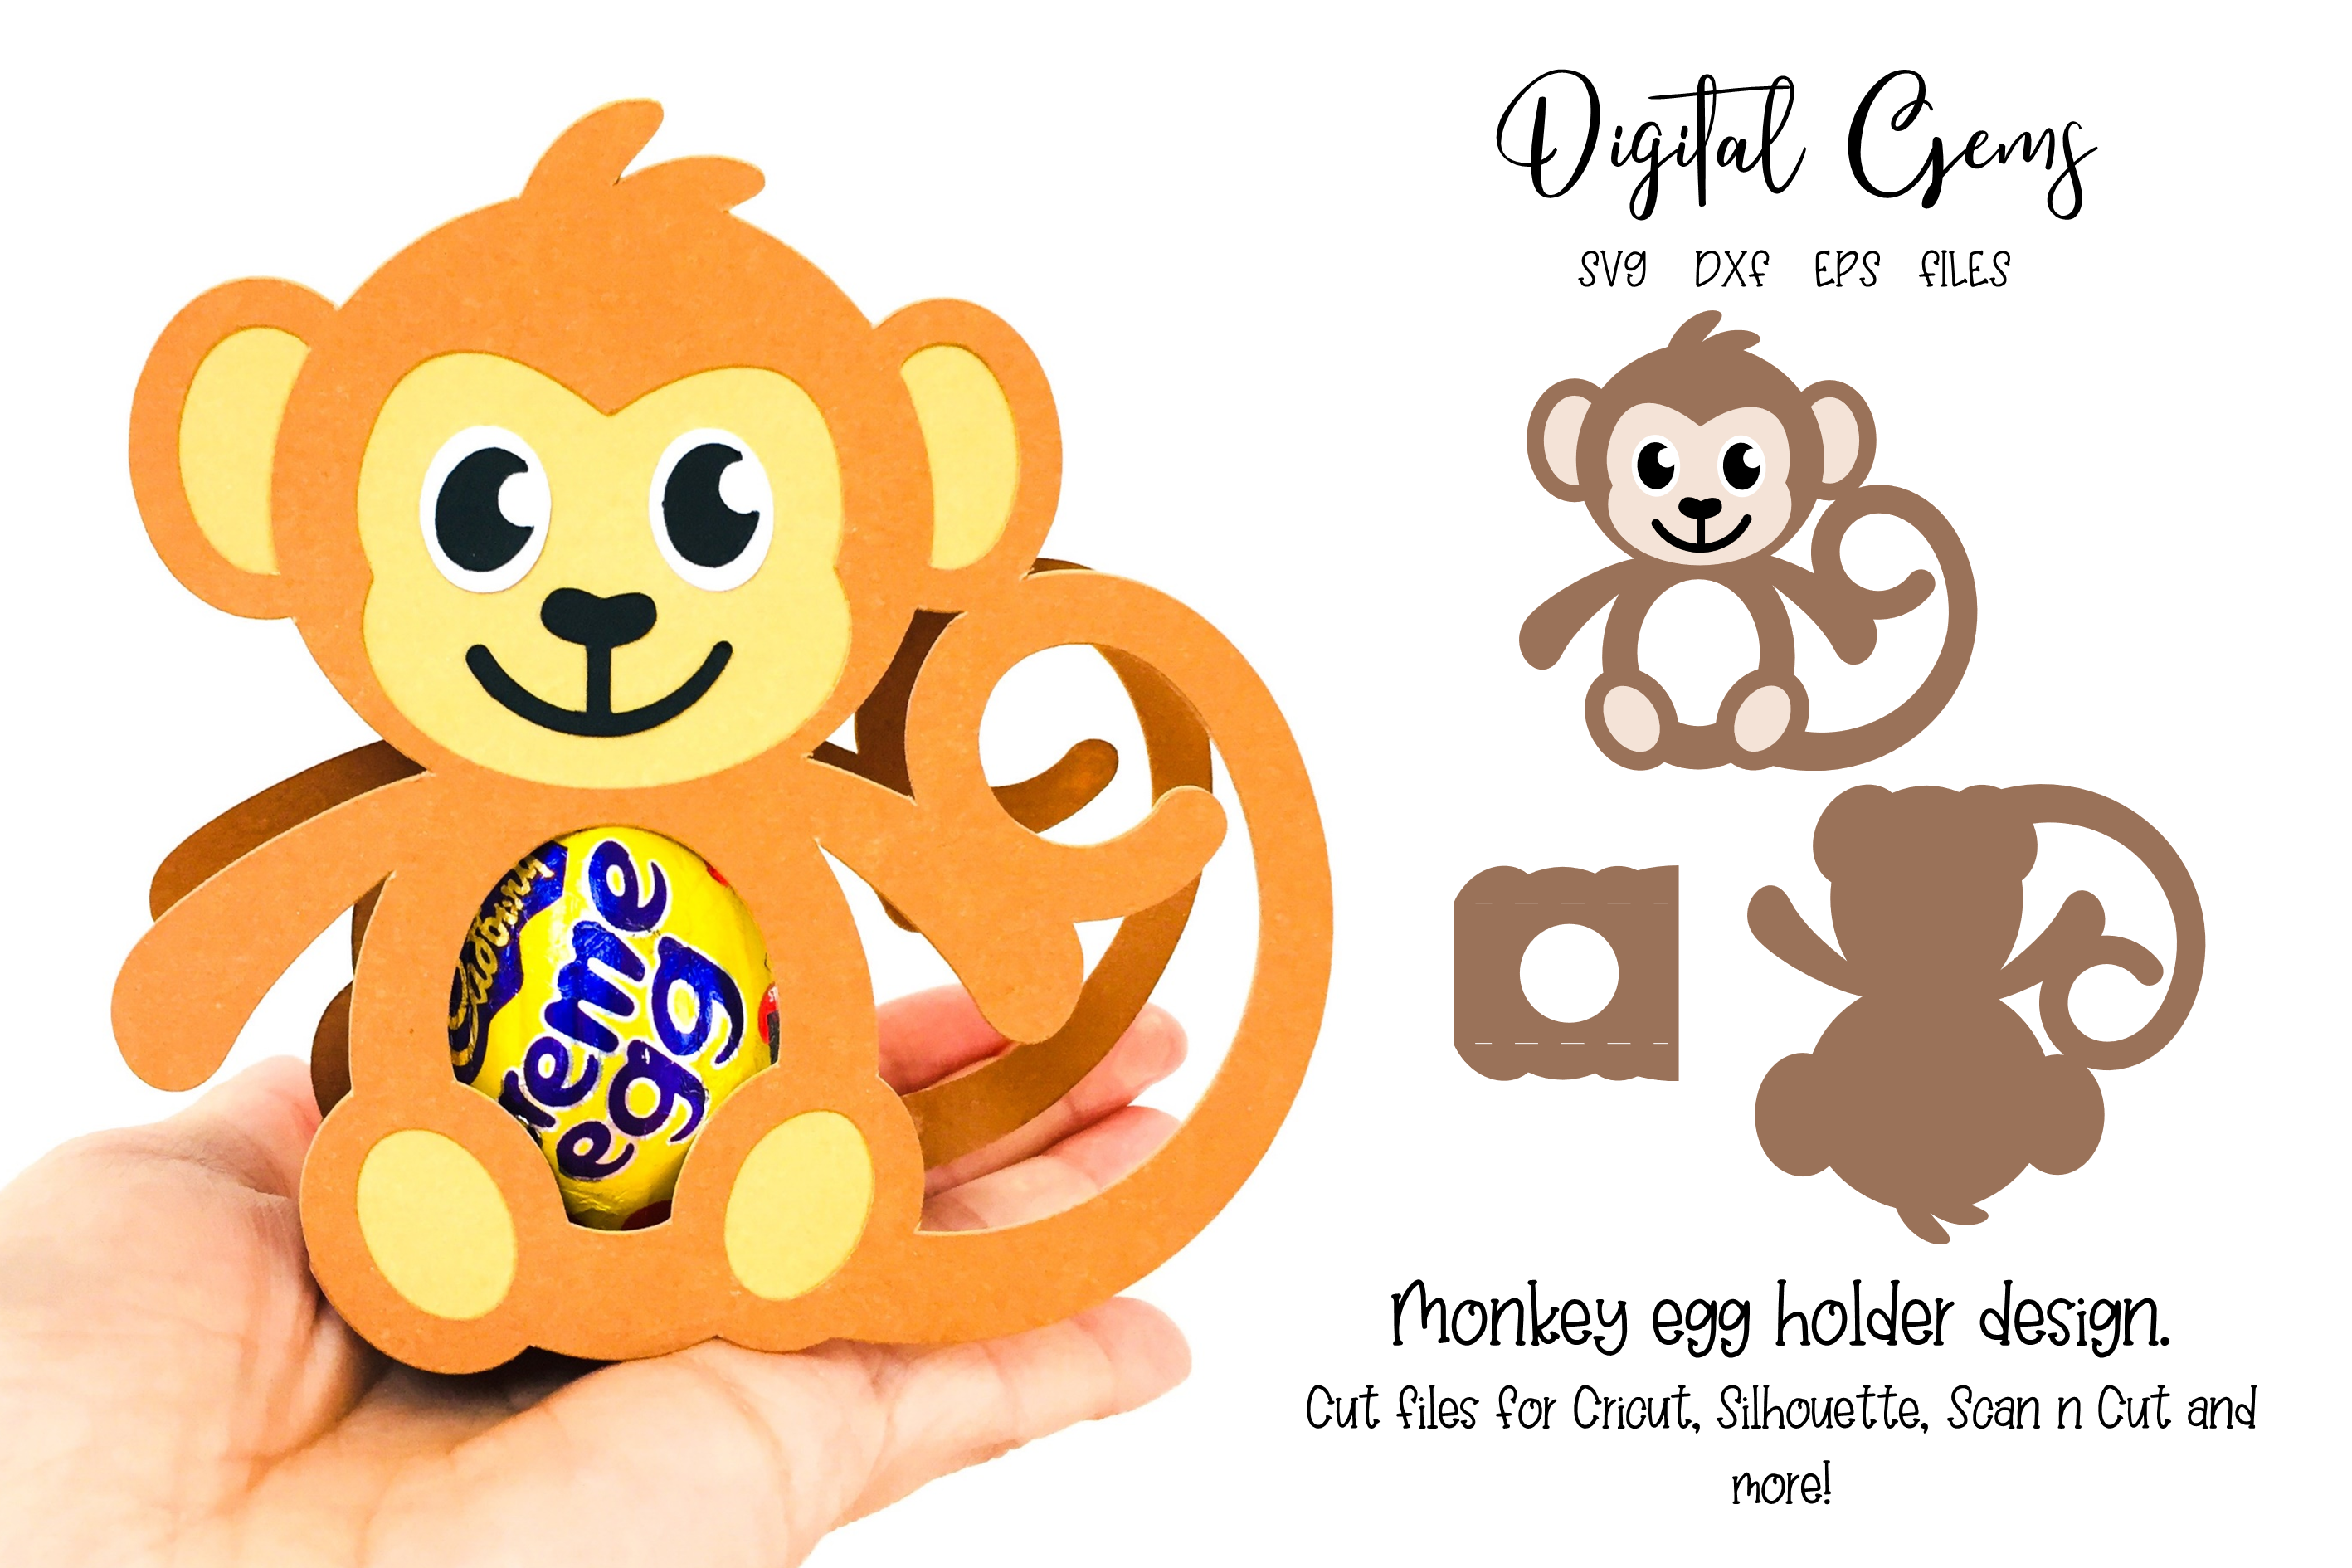 Download Free Monkey Egg Holder Design Graphic By Digital Gems Creative Fabrica for Cricut Explore, Silhouette and other cutting machines.